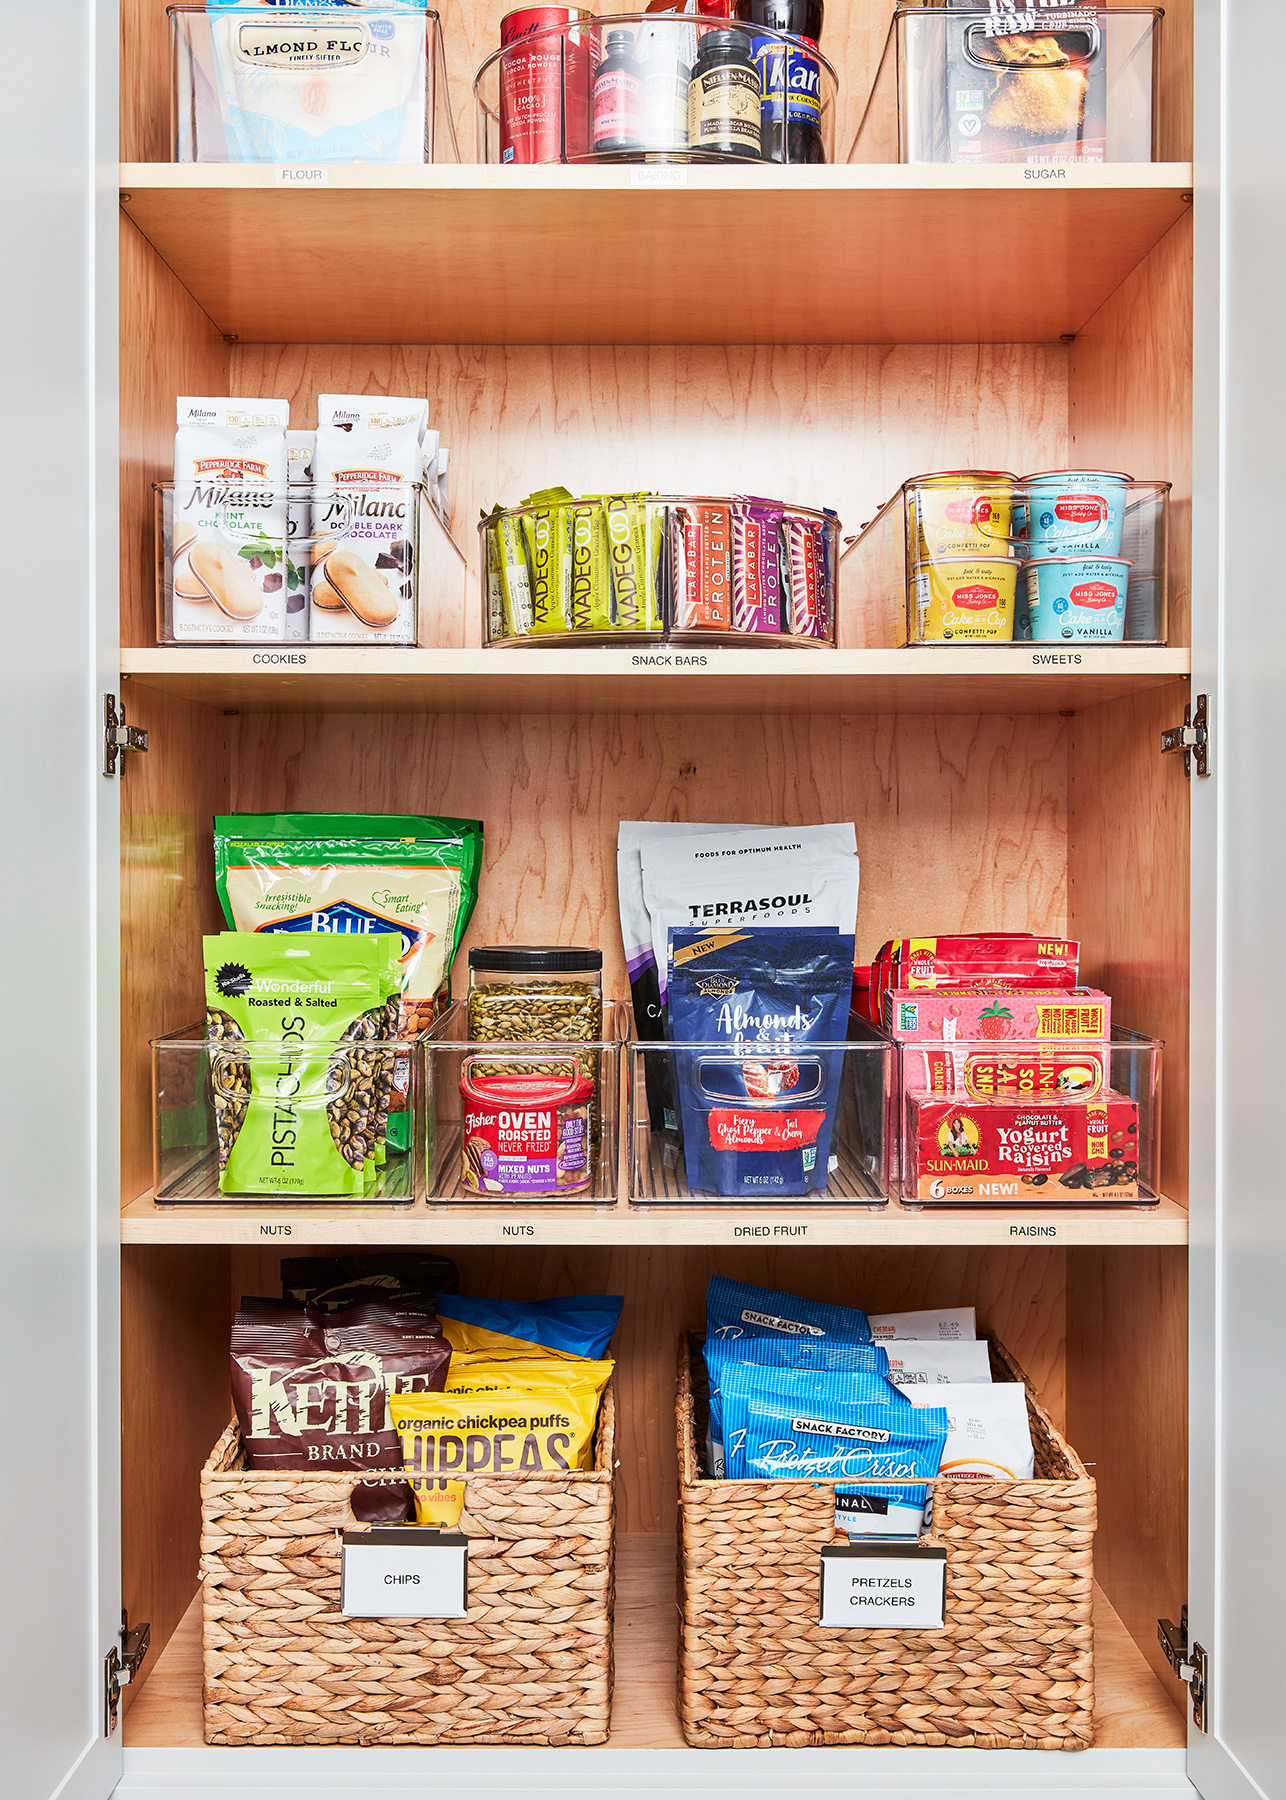 2020 Real Simple Home Tour: Pantry